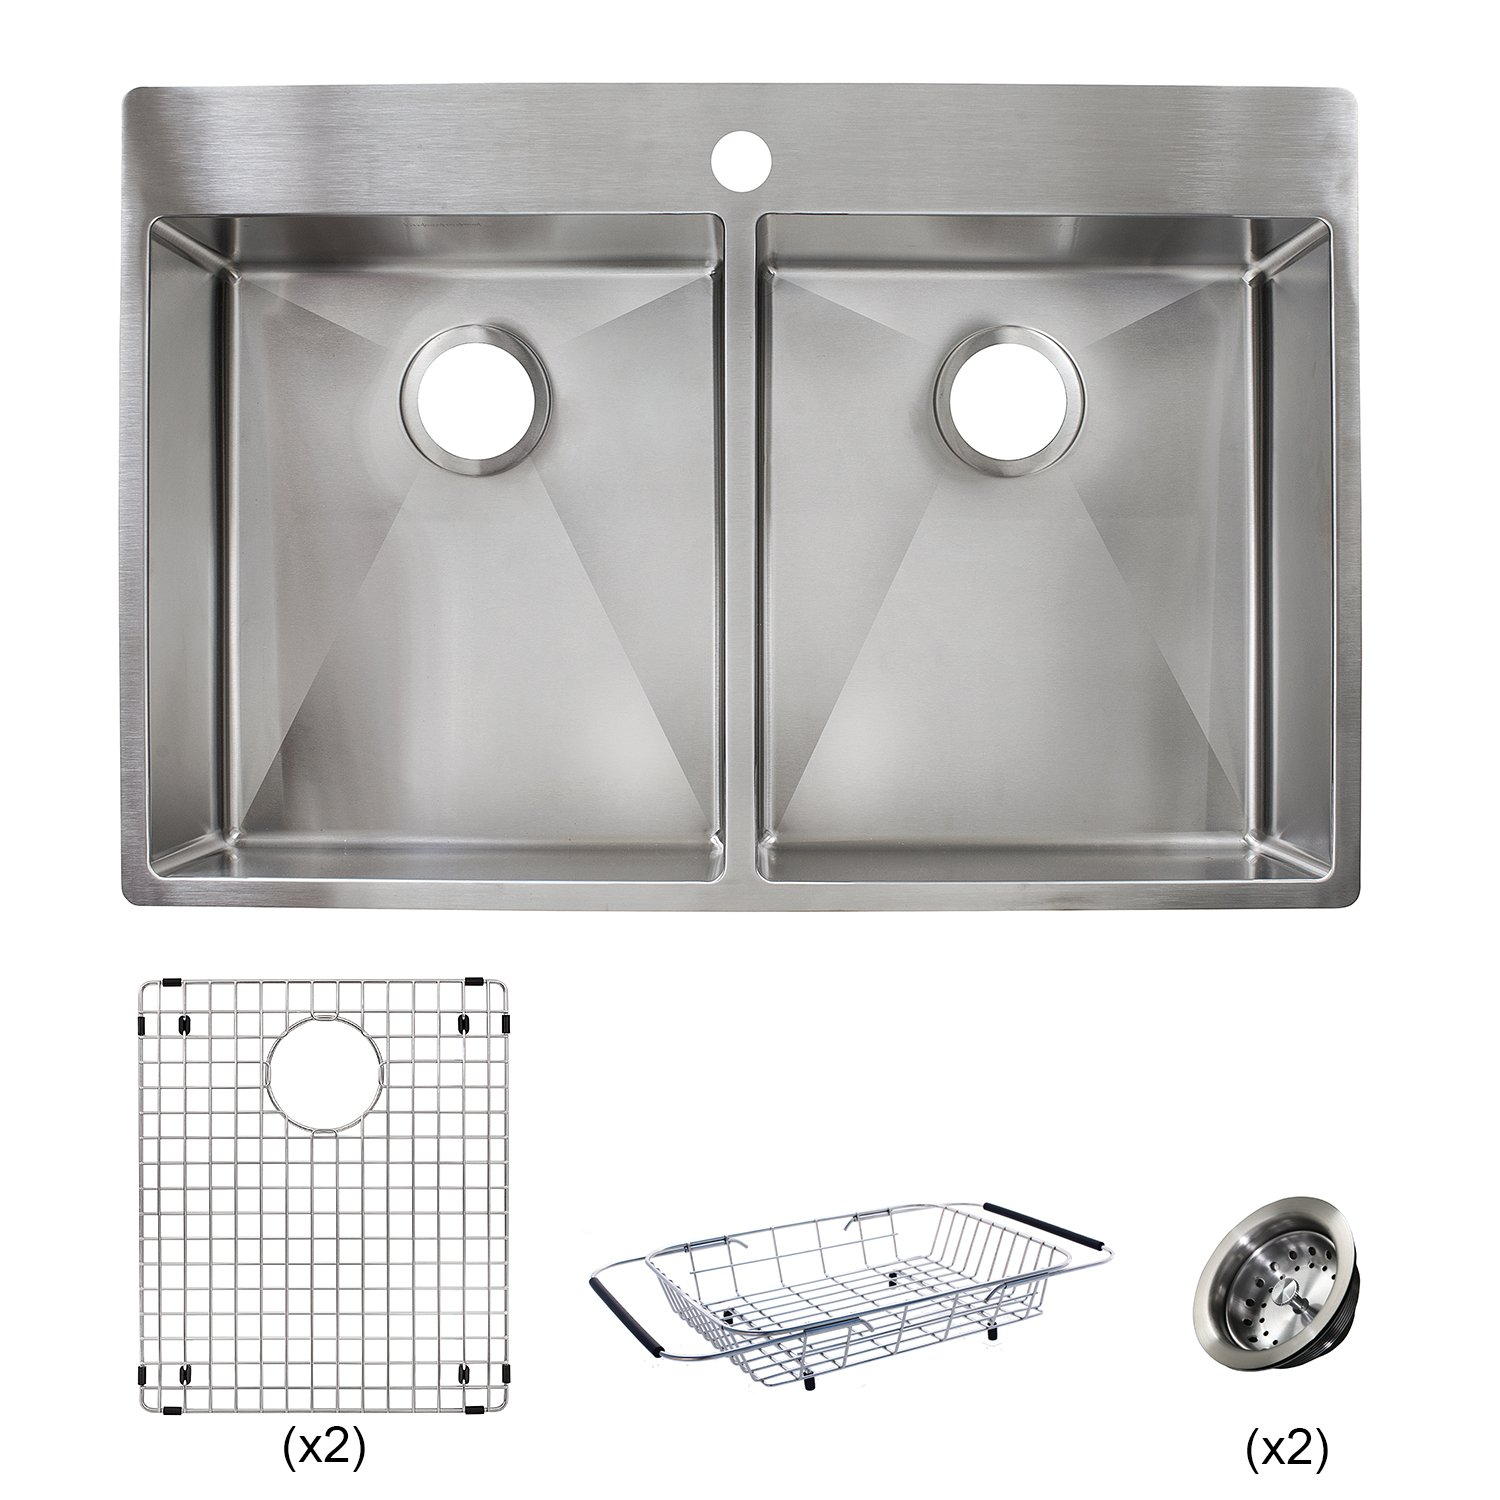 Franke HF3322-1KIT Vector 33.5 inch (33 inch) Handmade Dual Mount Double Bowl deep Kitchen Sink Kit, Stainless Steel by Franke (Image #6)